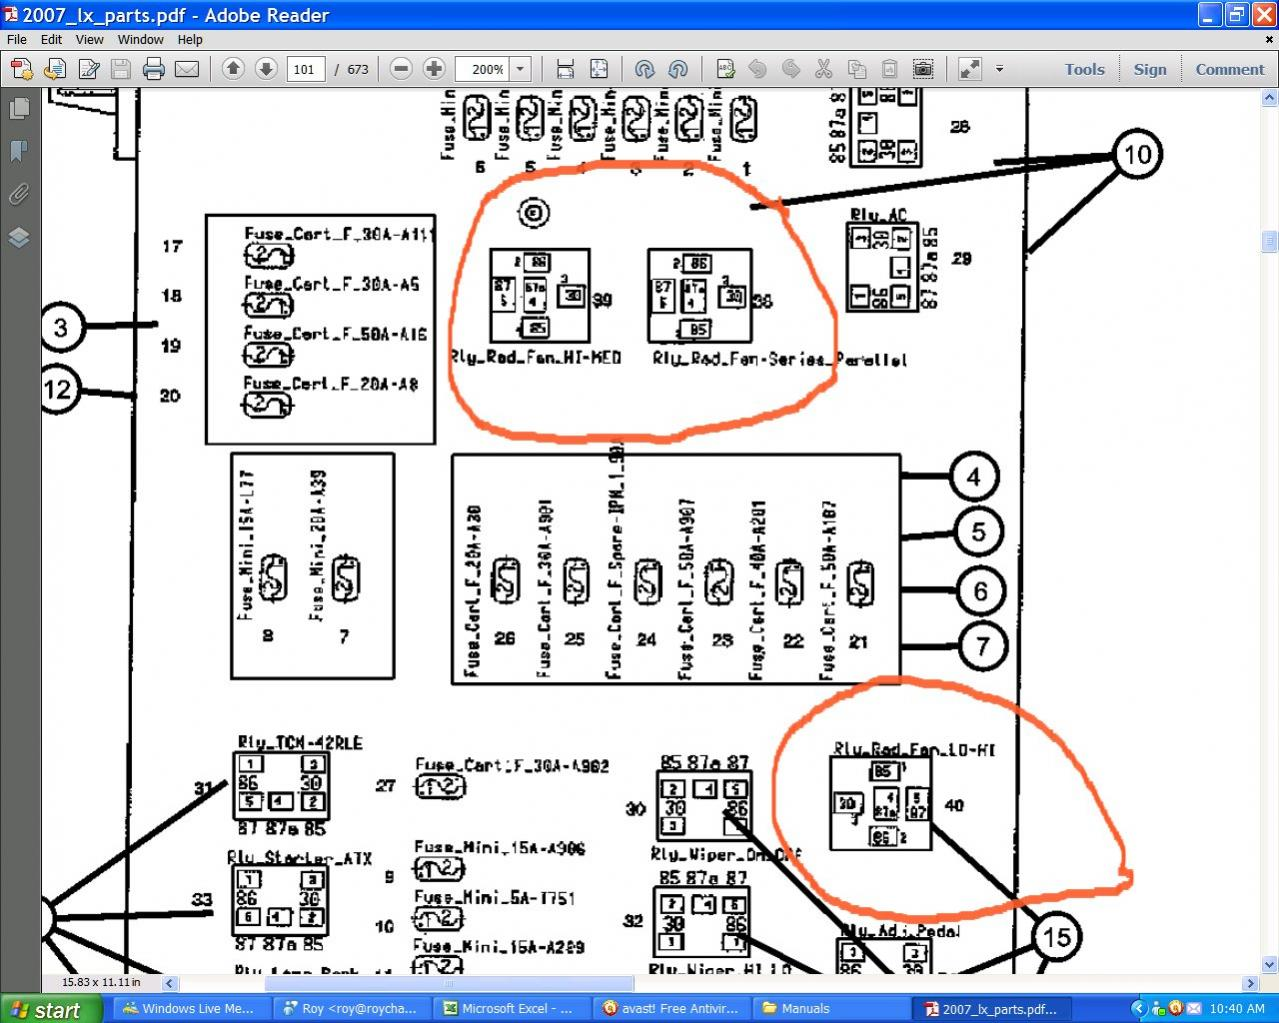 2ljkm 2007 Chrysler Pacifica Wiring Diagram The 2 Oxygen Sensor 3 5l V6 moreover 2007 Chrysler 300 Fuse Box Diagram as well How Do I Hook Up The Remote Entry Feature Of A Remote Start Unit In A 2004 Rende together with 486647 A further 21lgu Volvo S60 2 5t Radiator Fan Not Working. on chrysler 300 relay location